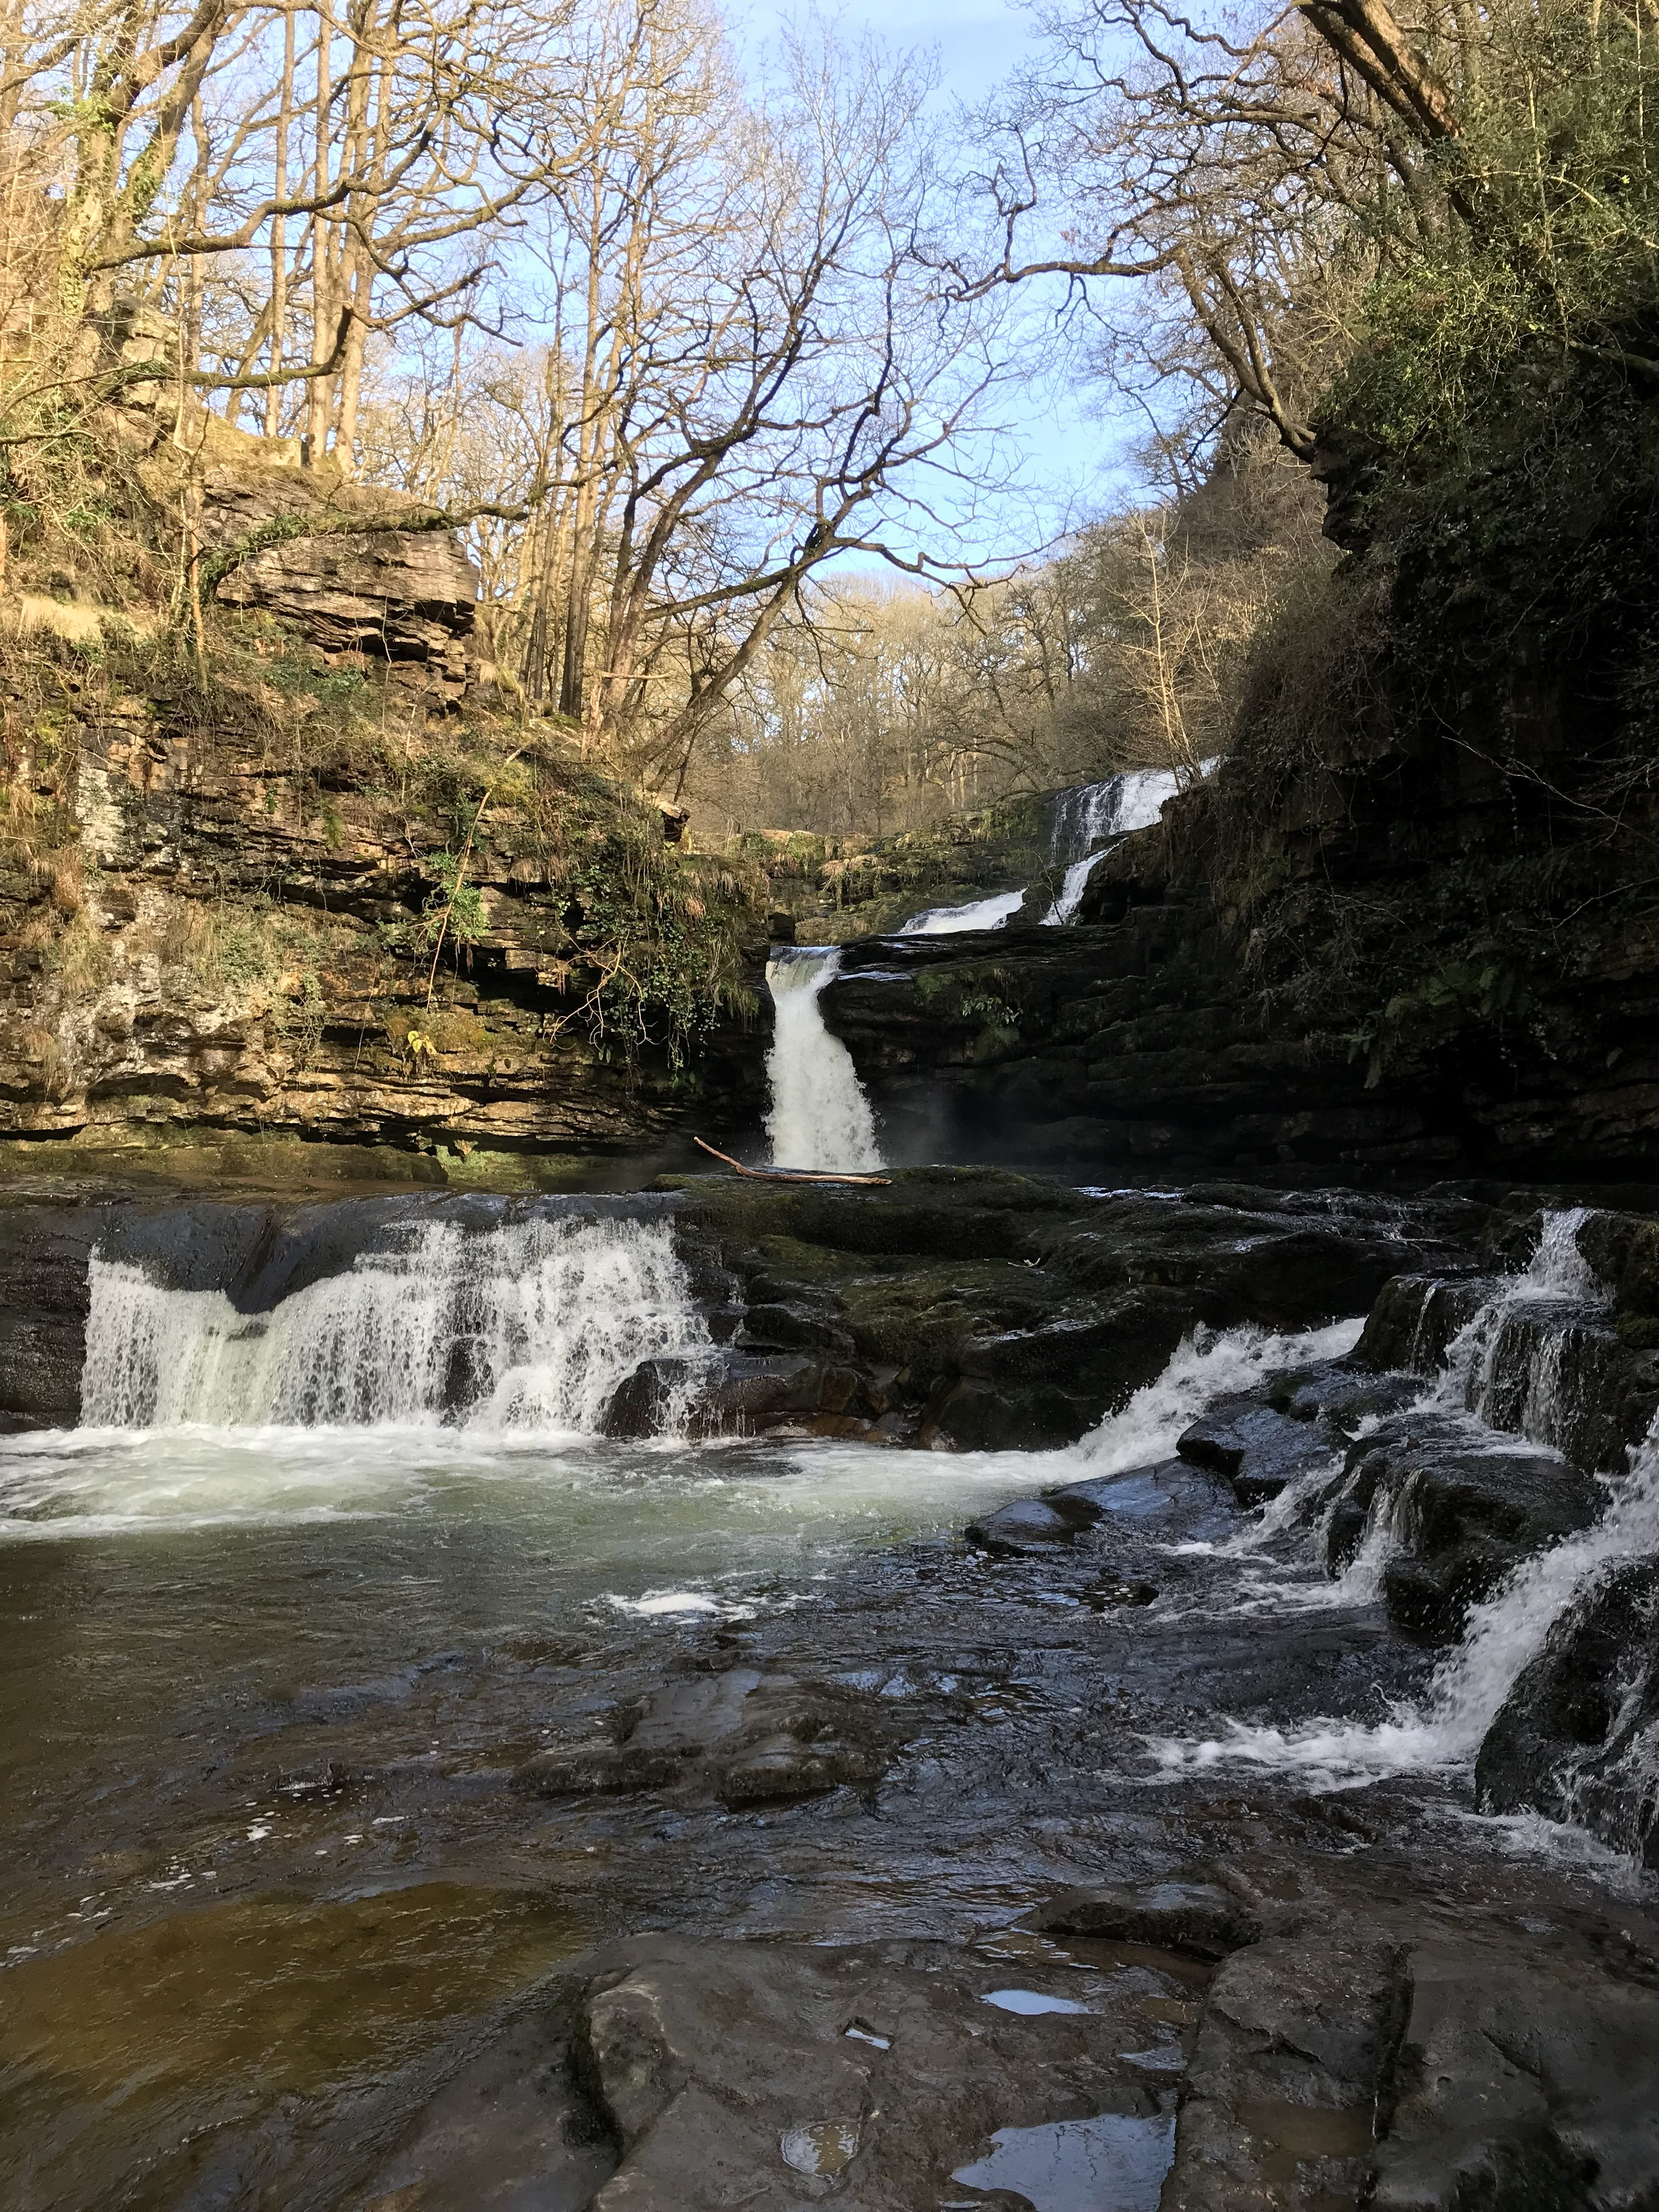 Tips for the 4 Waterfalls Walk   Brecon Beacons 4 Waterfalls